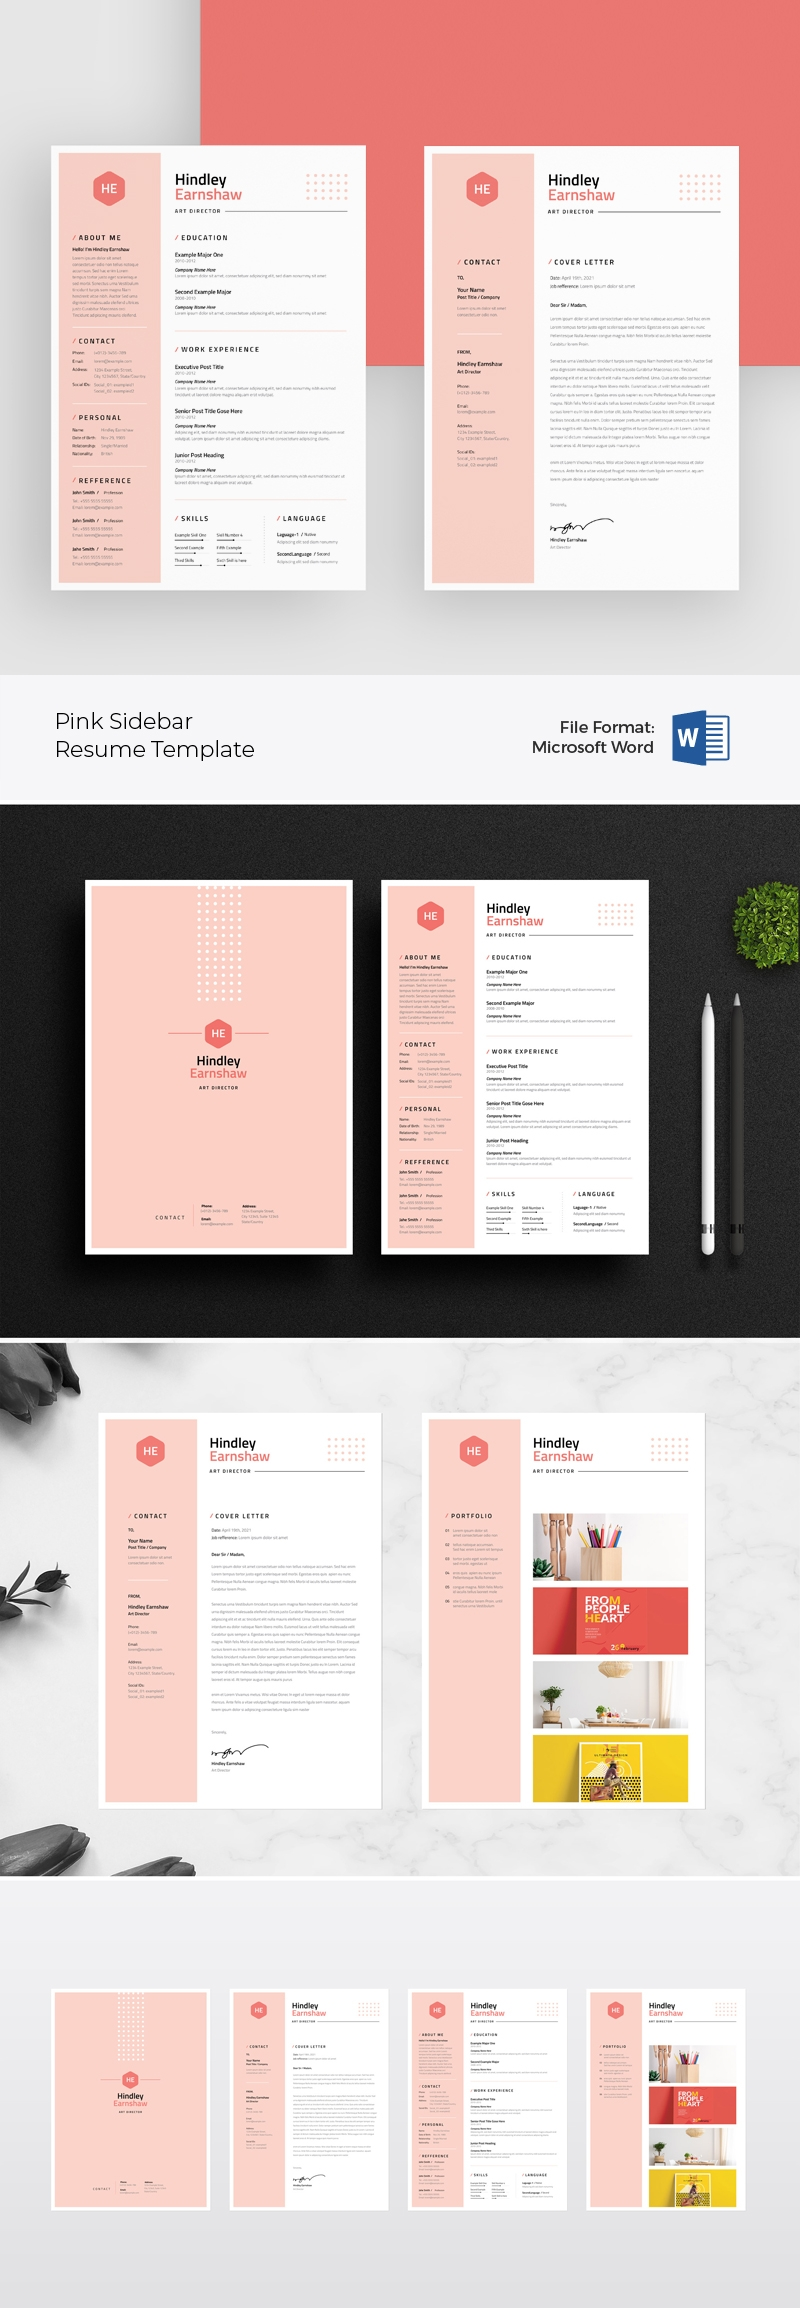 Professional Resume & Cover Letter / CV With Pink Sidebar